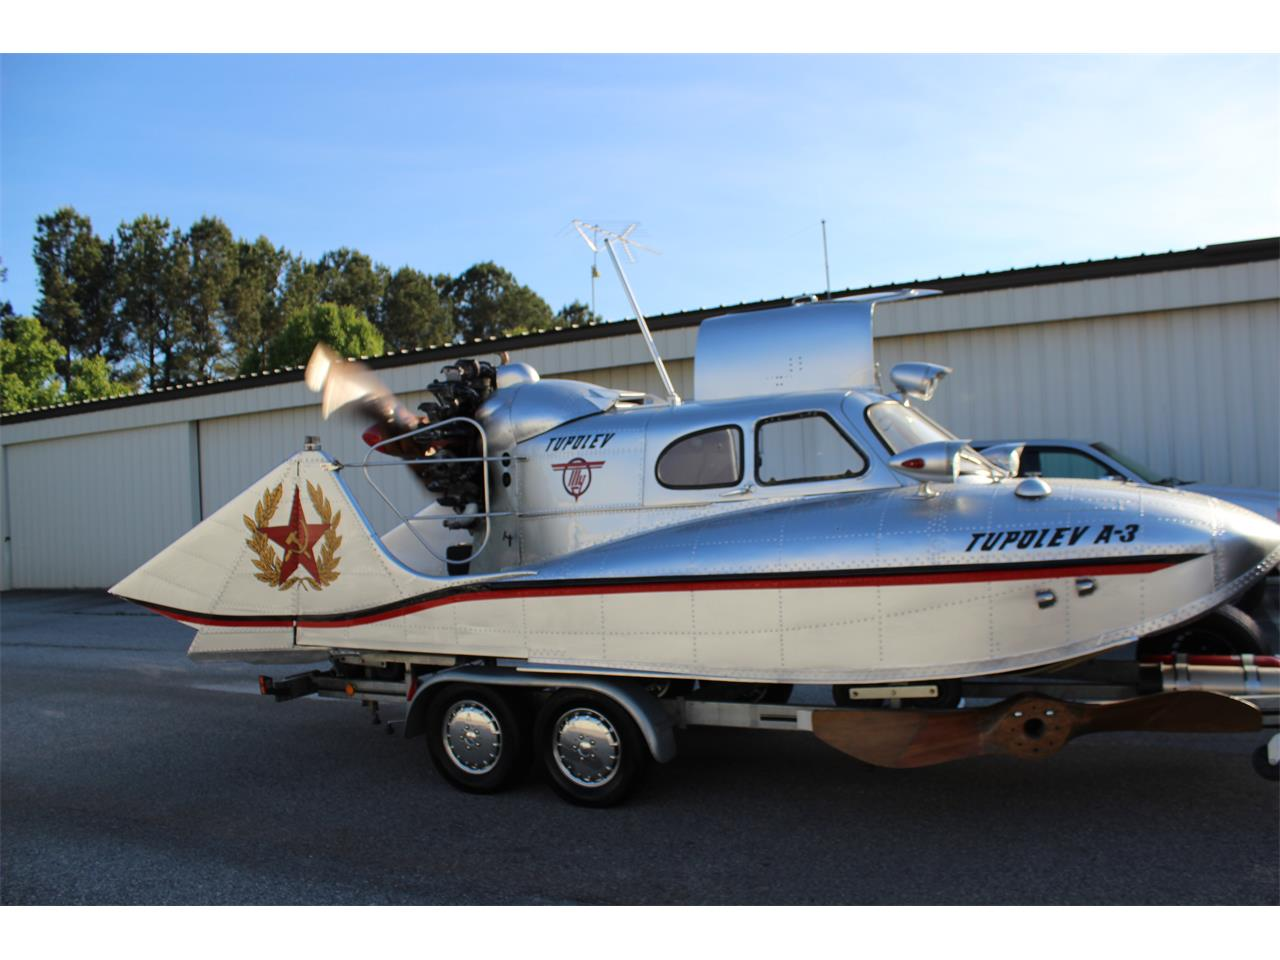 Large Picture of '78 N007 located in Atlanta Georgia - $250,000.00 Offered by a Private Seller - DAJC